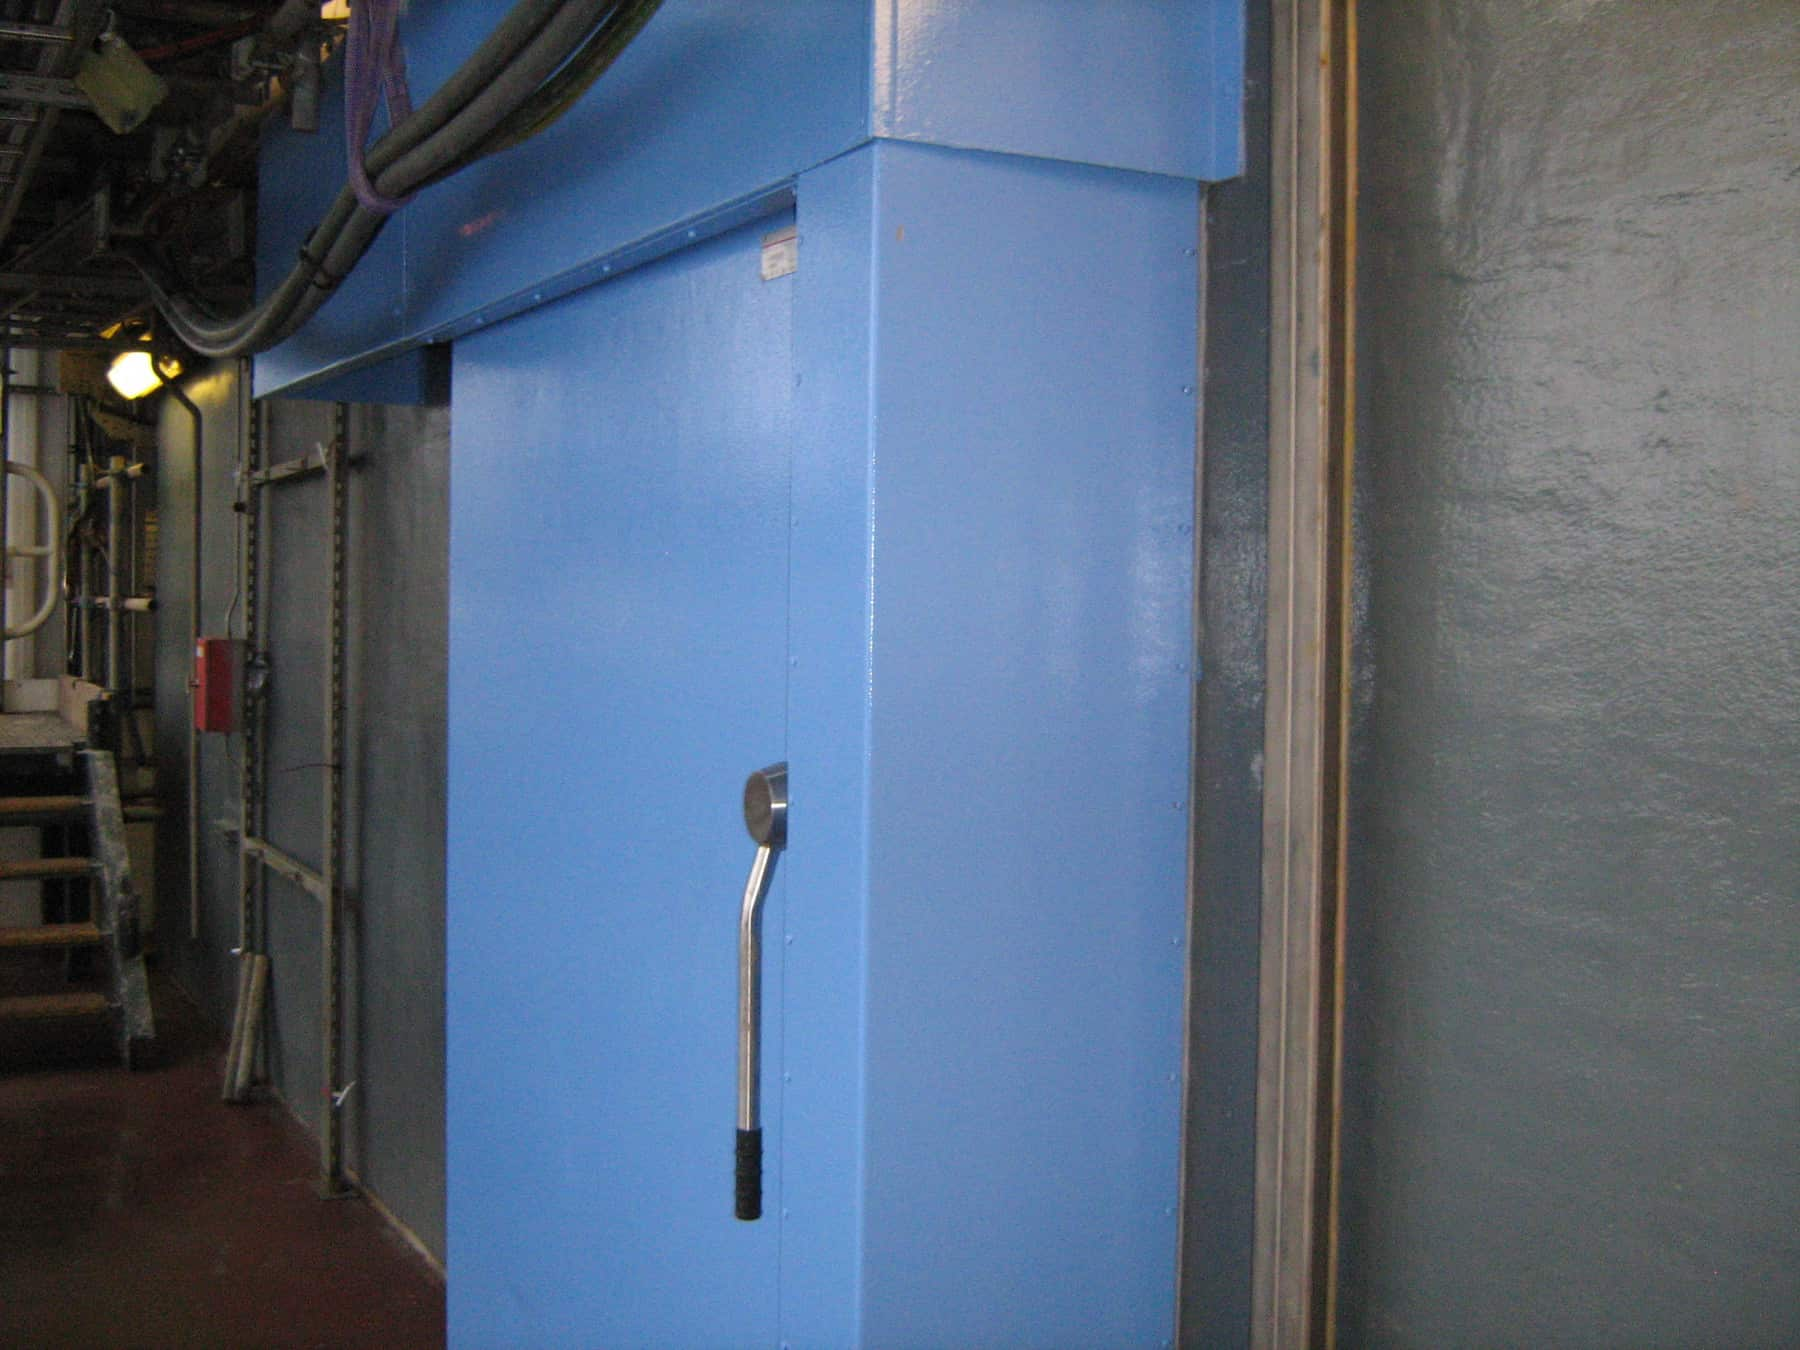 external door on offshore platform painted in blue